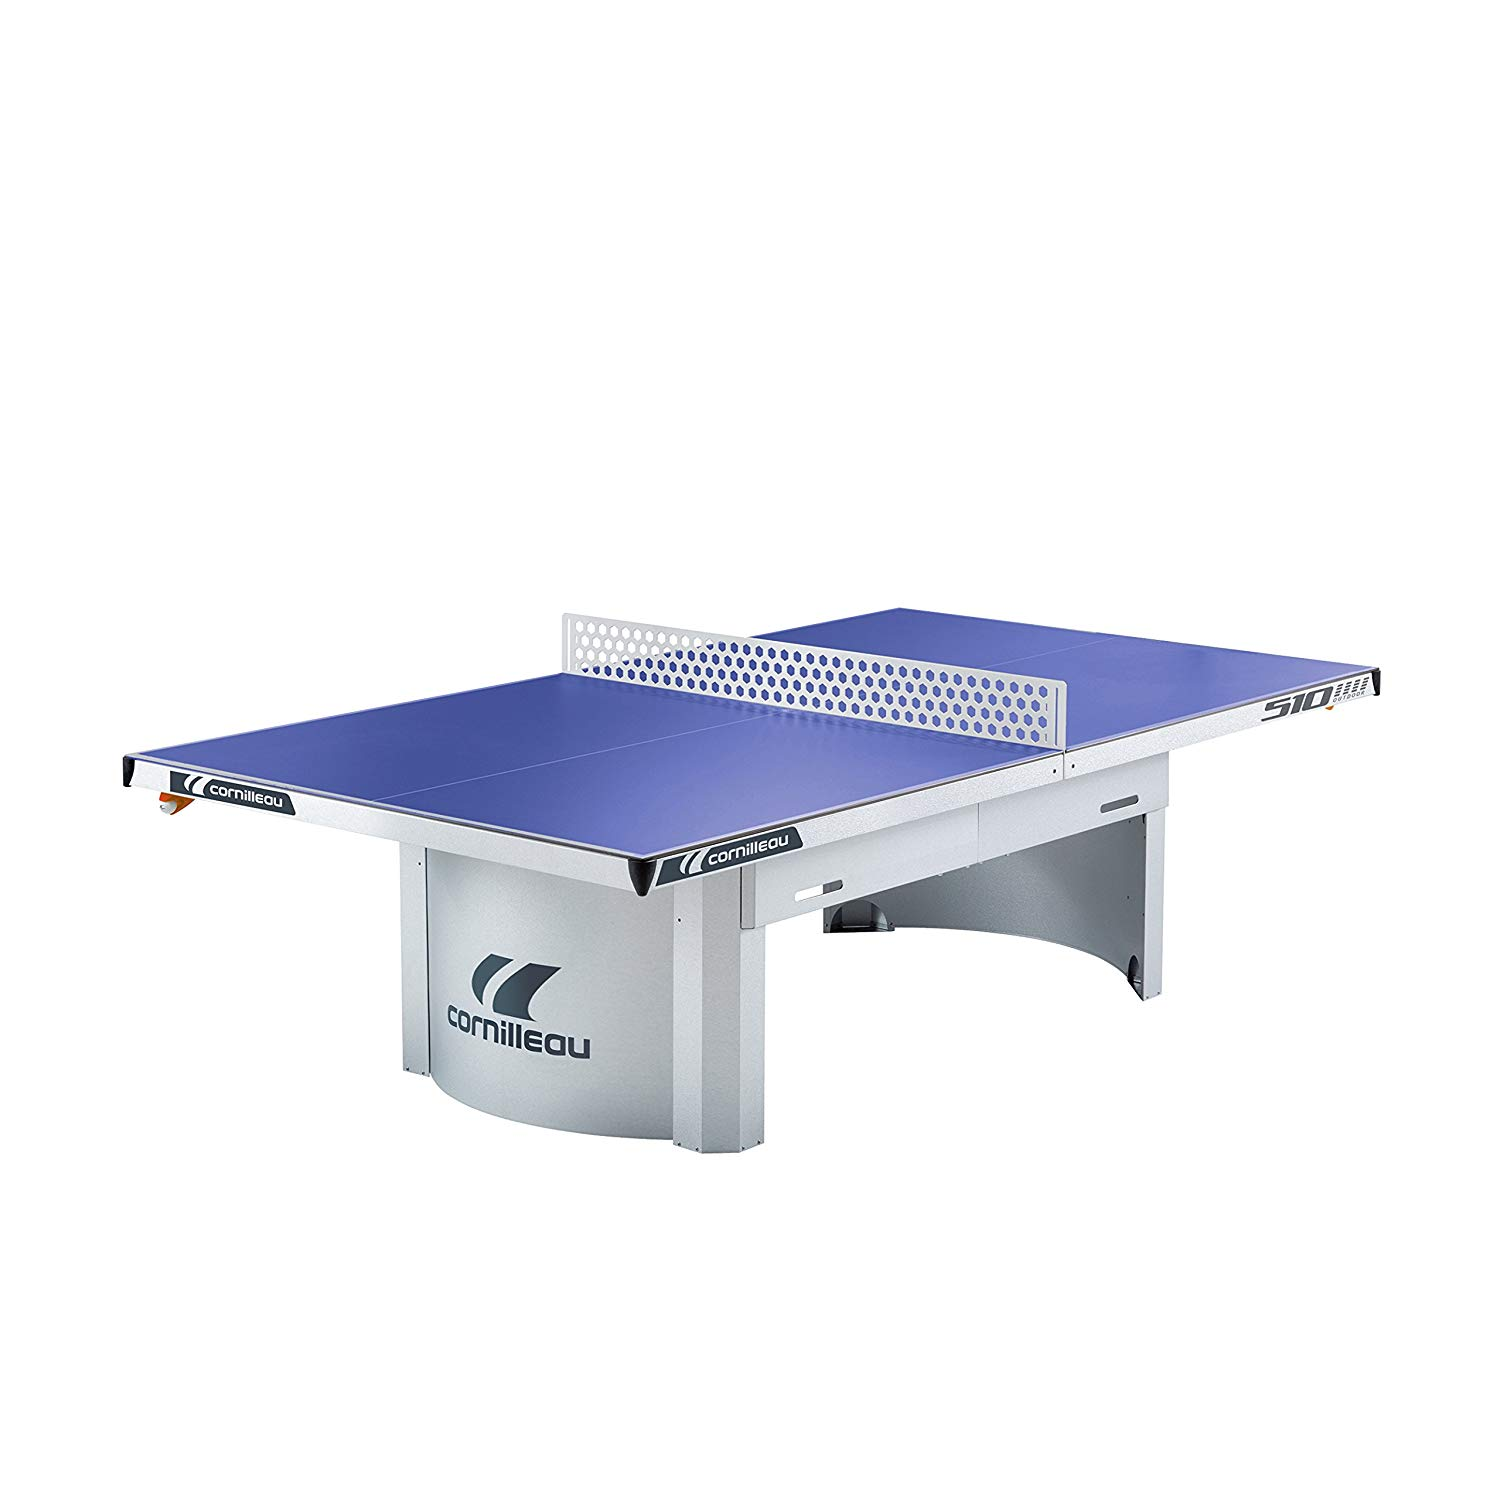 Cornilleau - Pro 510M Outdoor Table- Ping Pong Table Tops